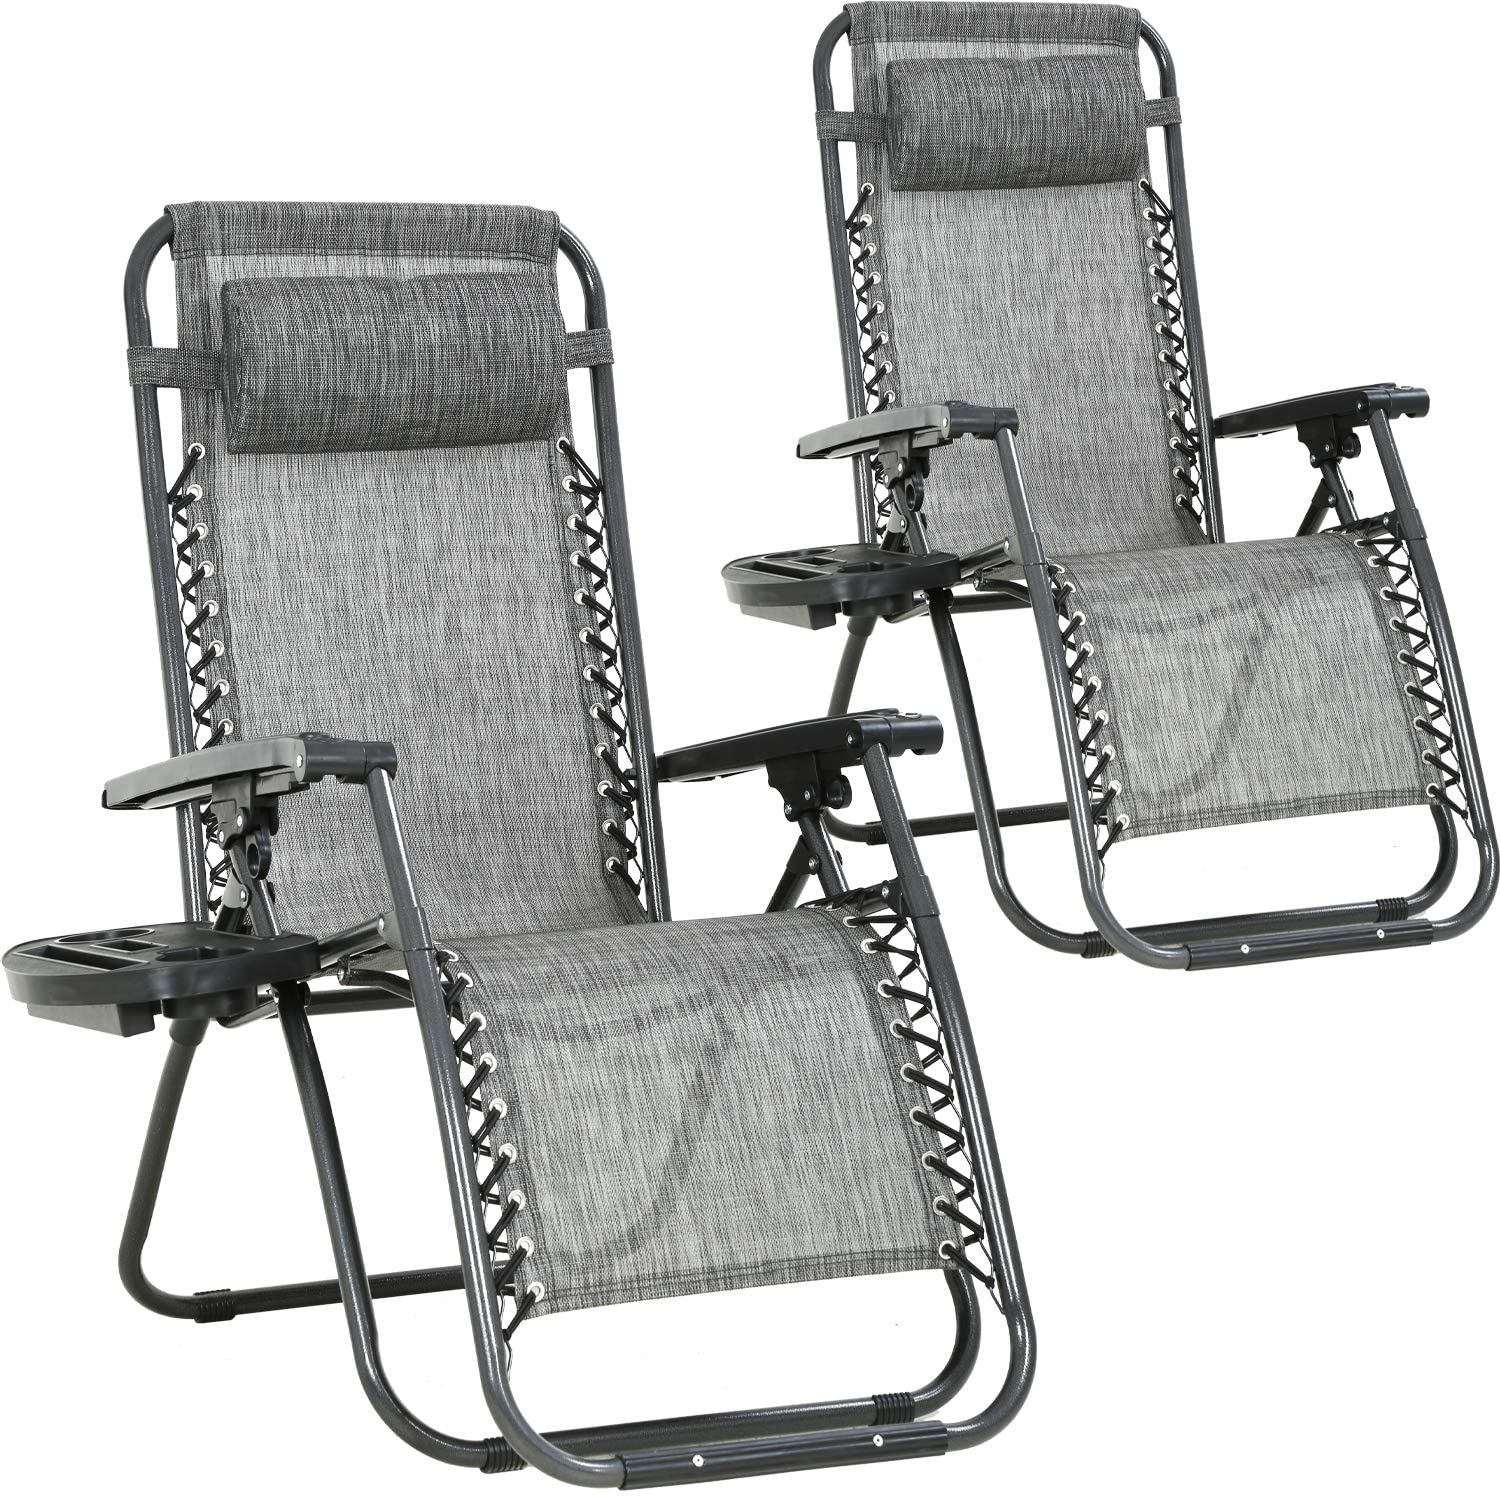 Zero Gravity Chair Patio Chairs Set of 2 Lawn Chair Outdoor Chair Deck Chairs Camping Chairs Folding Lounge Chair Beach Chairs Anti Recliner Pool Chair